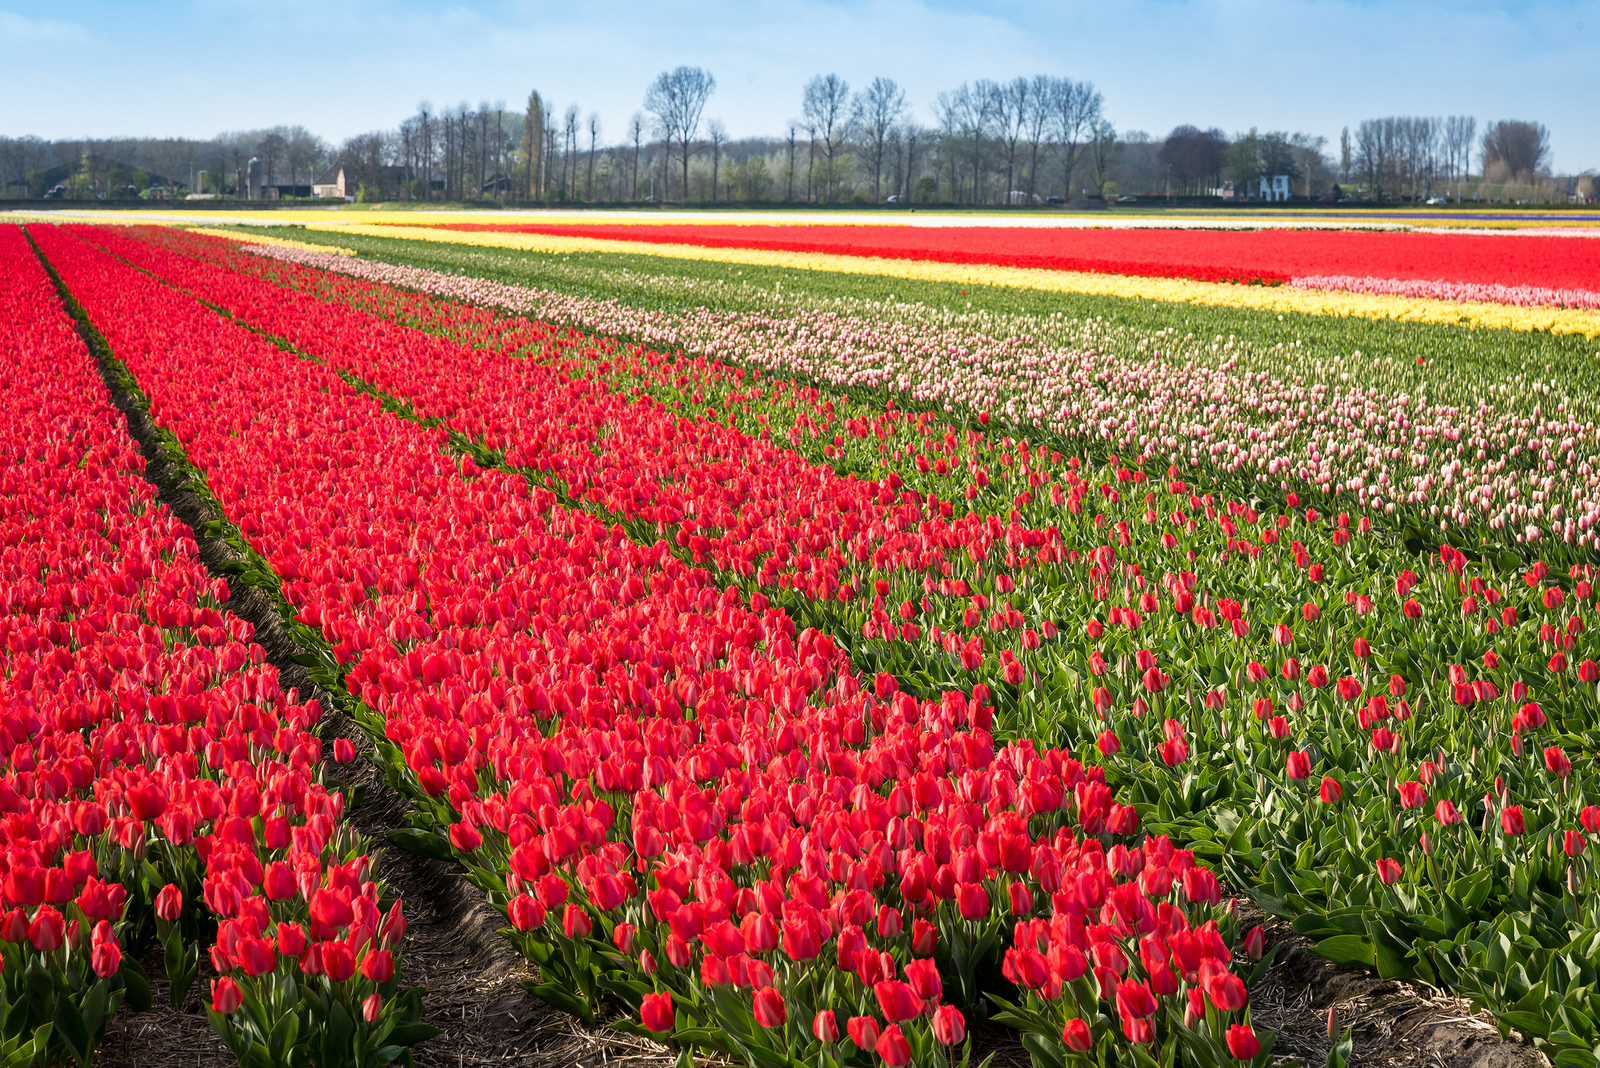 10 ways to take in the tulips in Amsterdam | I amsterdam